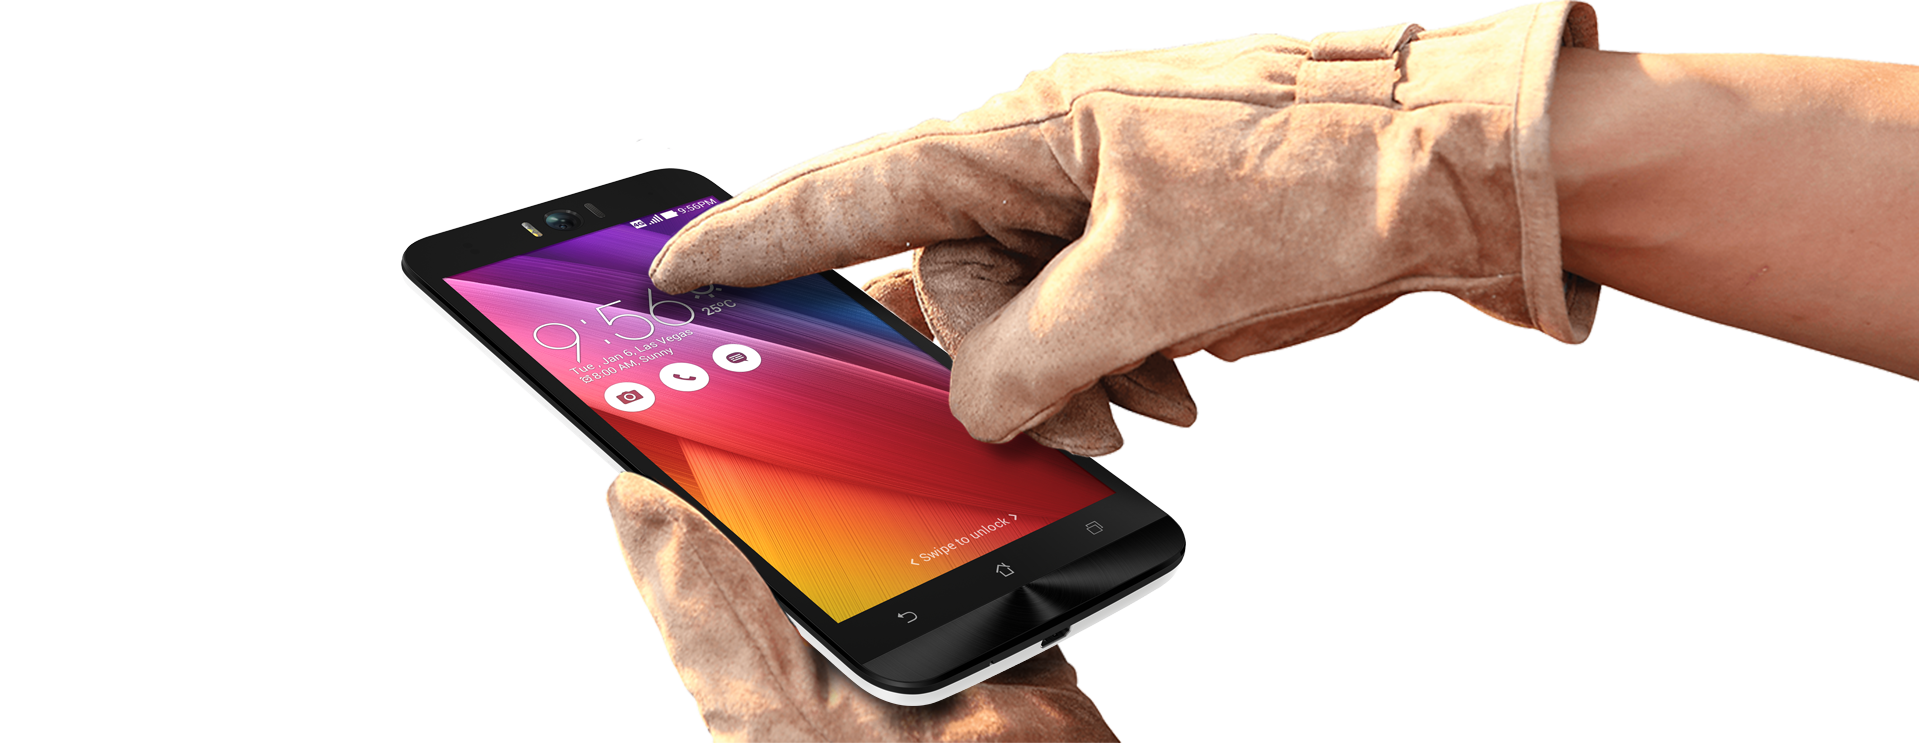 Zenfone Selfie Zd551kl Phone Asus Philippines Selfi 4g Lte Supports Glove Touch Technology So It Responds To Your Every Swipe And Gesture Even If Youre Wearing Gloves